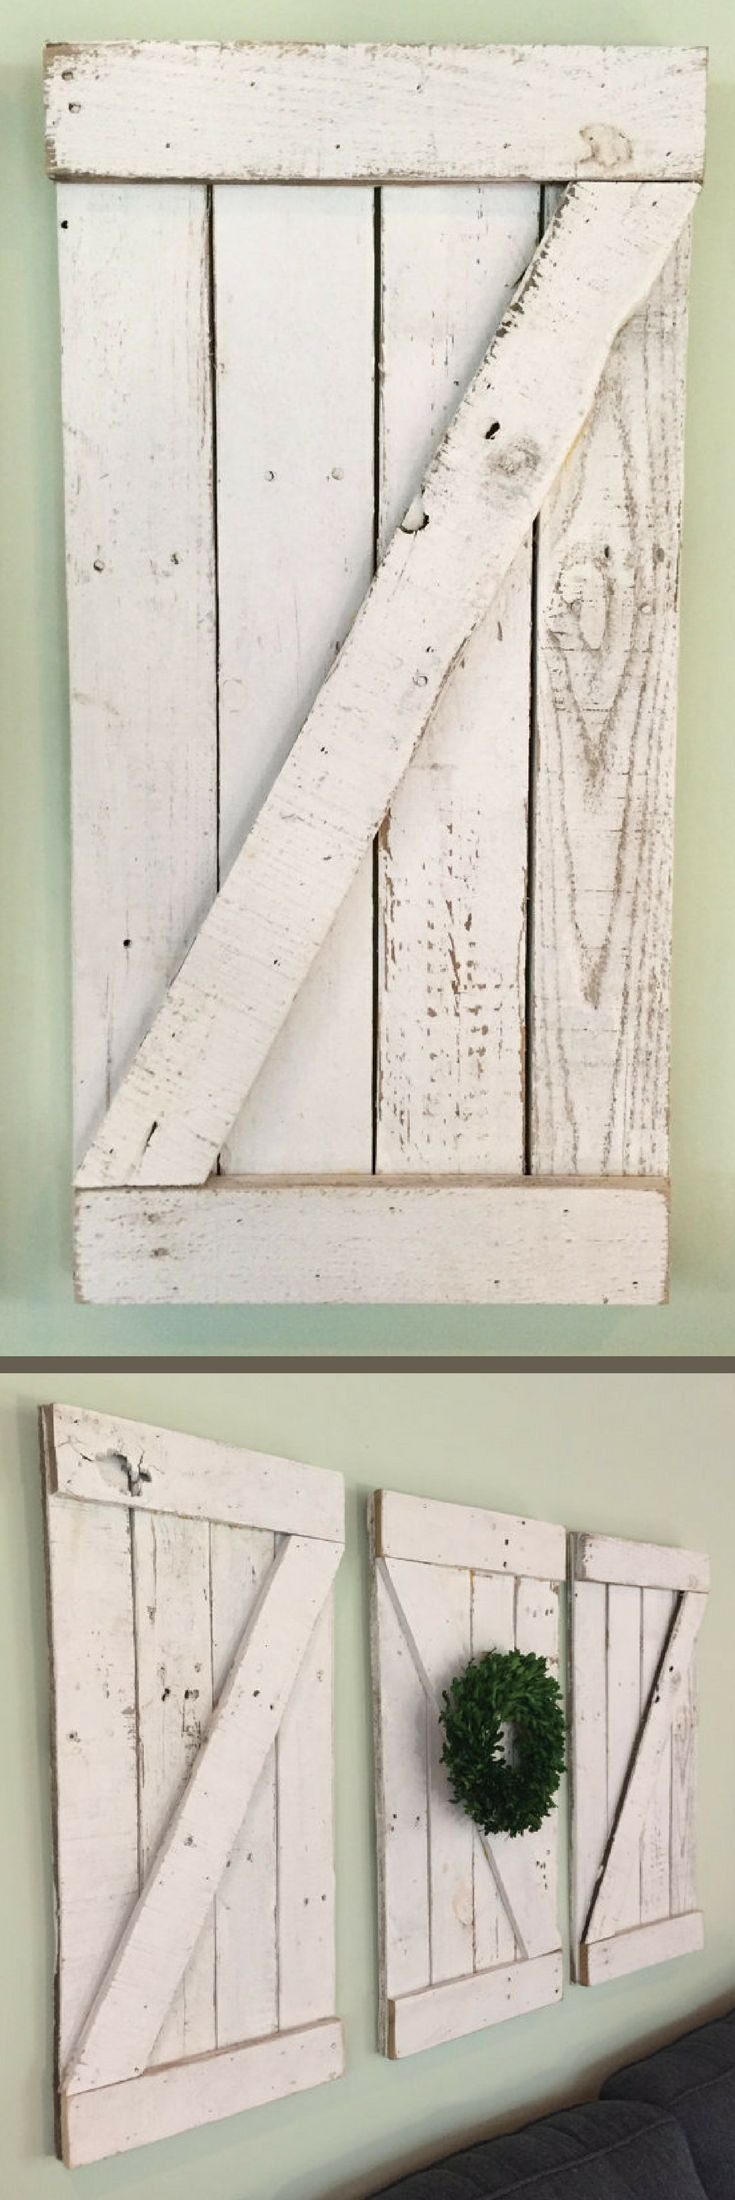 These Are Fantastic! Rustic Barn Door Wood Wall Hanging, Wooden With Latest Shutter Window Hanging Wall Decor (View 17 of 20)